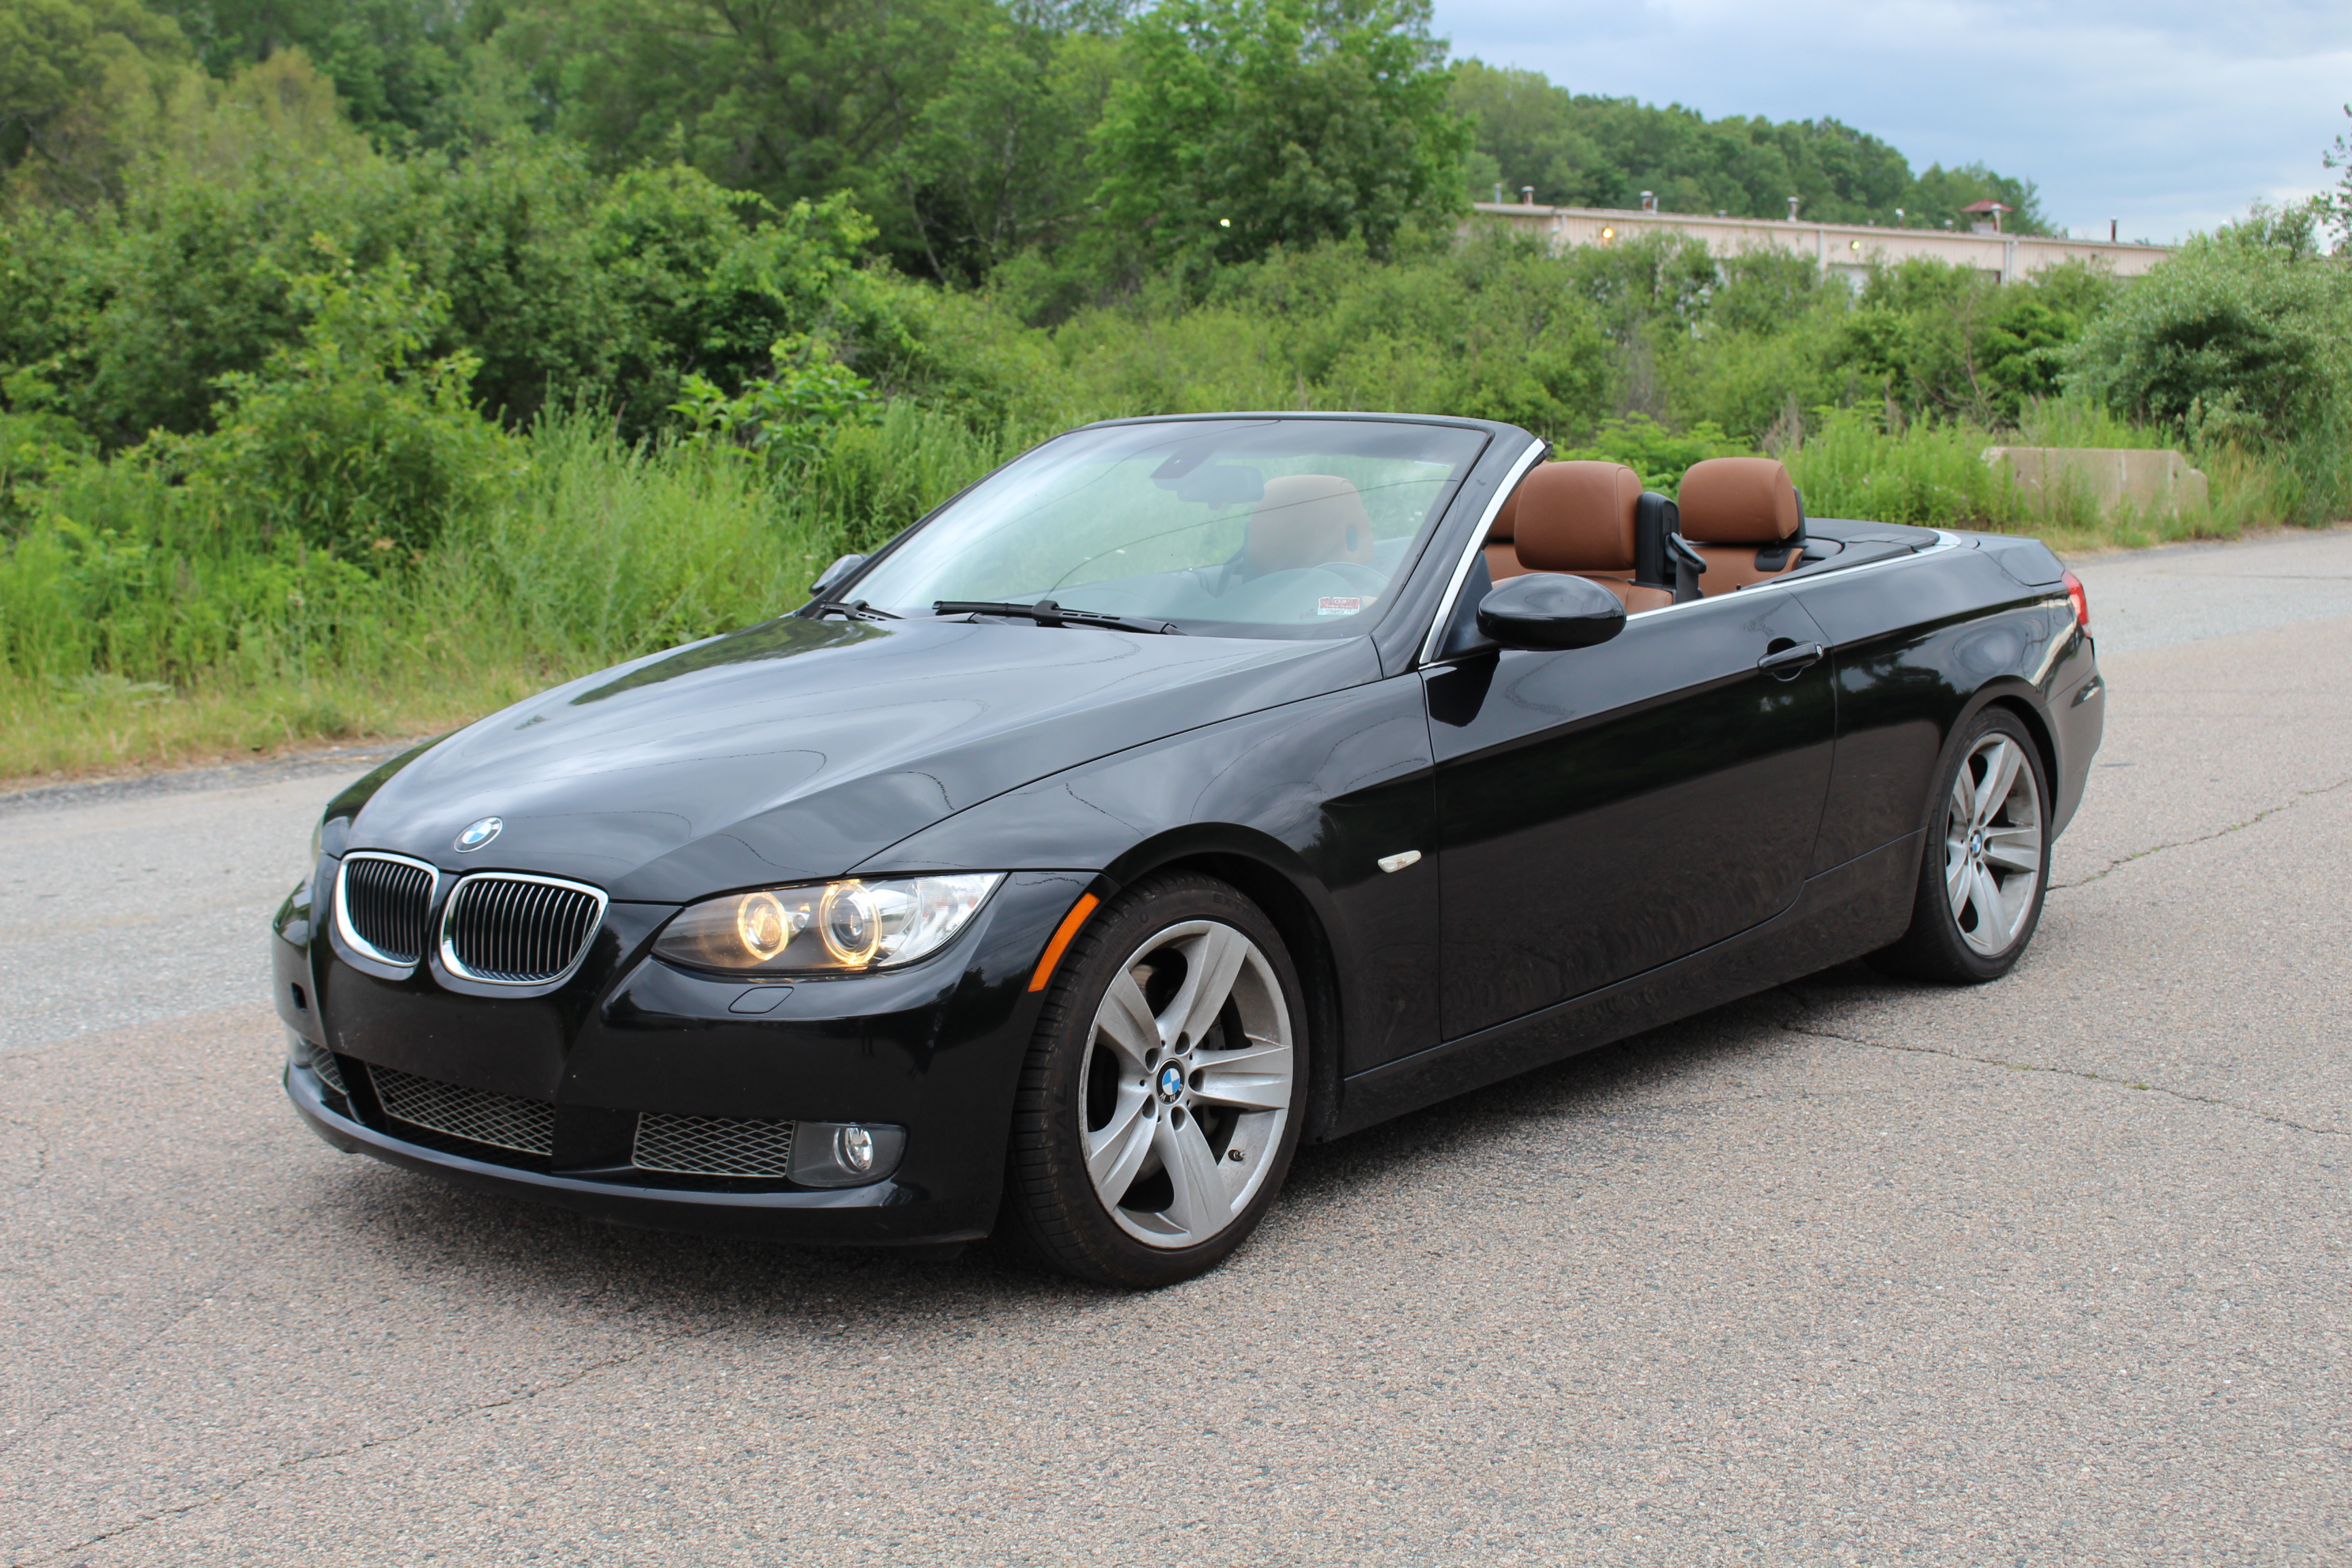 BMW Driving School >> 2009 BMW 335i Convertible | Imotobank Dealership